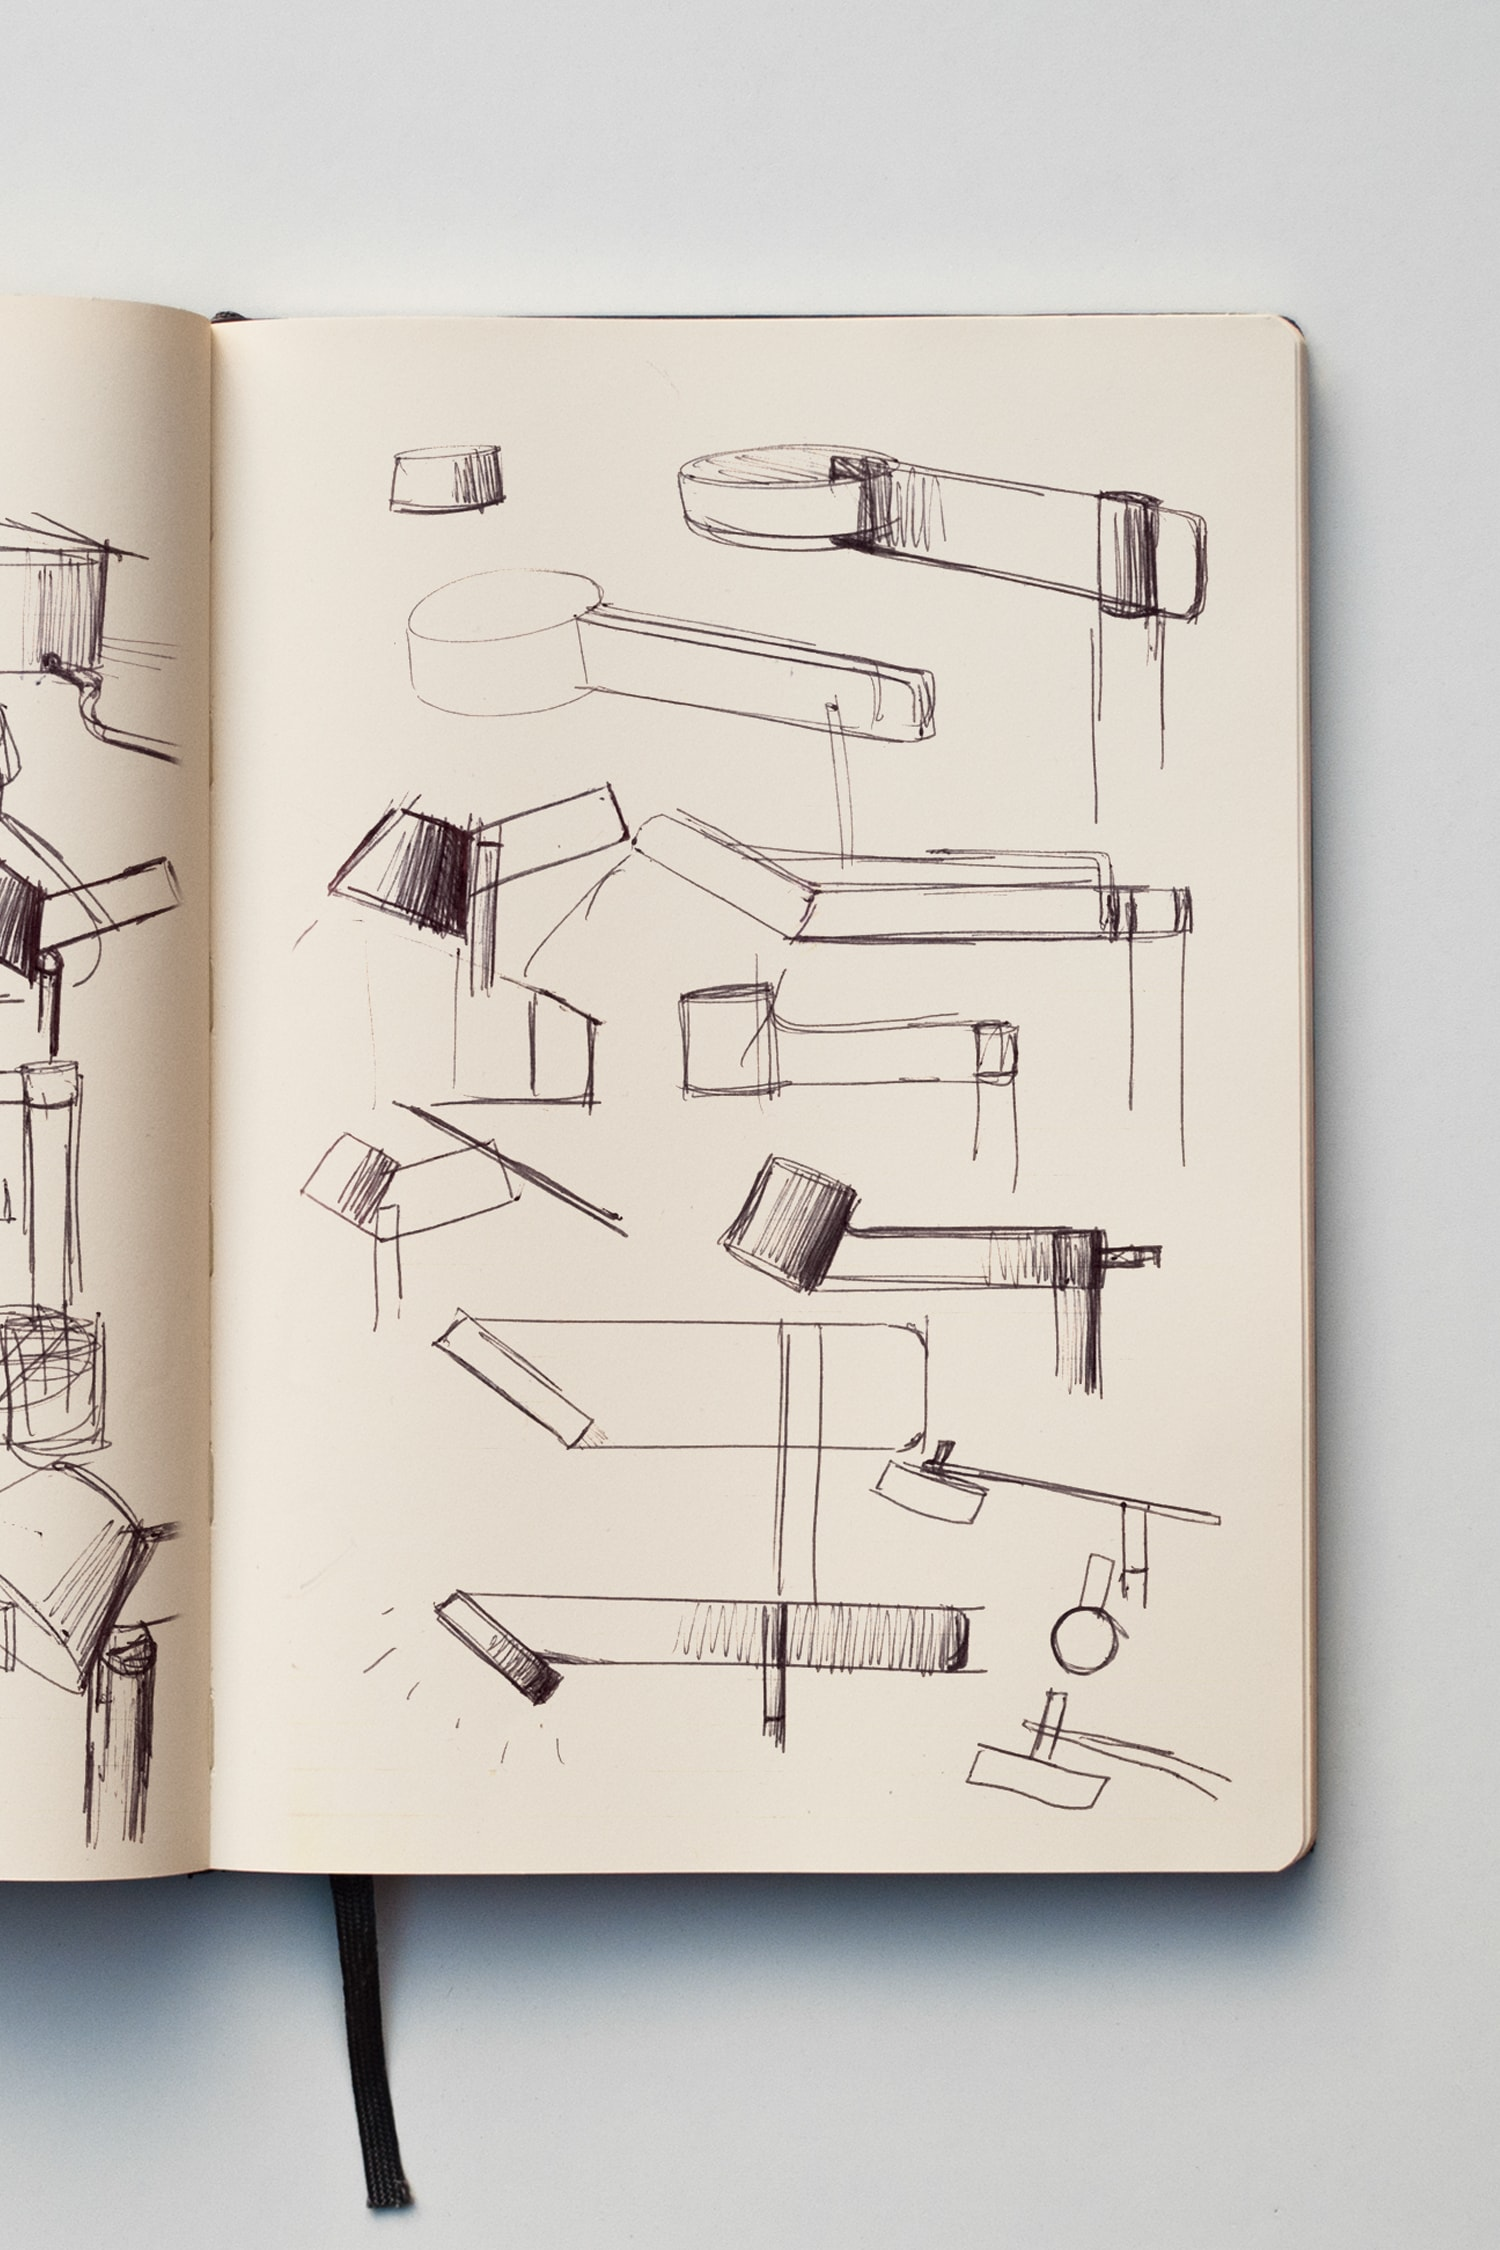 A notebook with some quick sketches of a lamp.